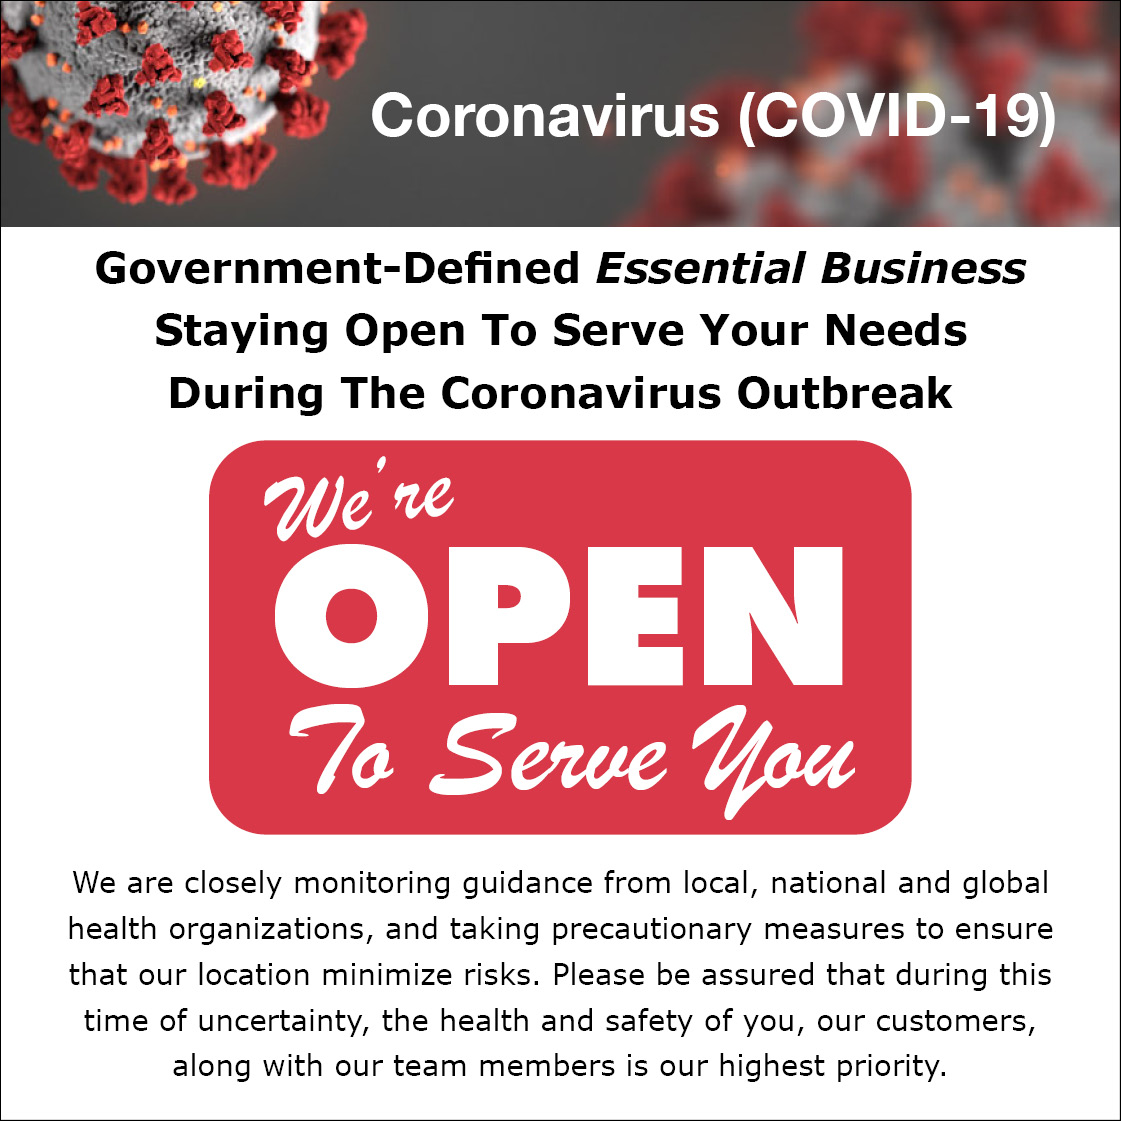 We Are Open During the COVID-19 Period